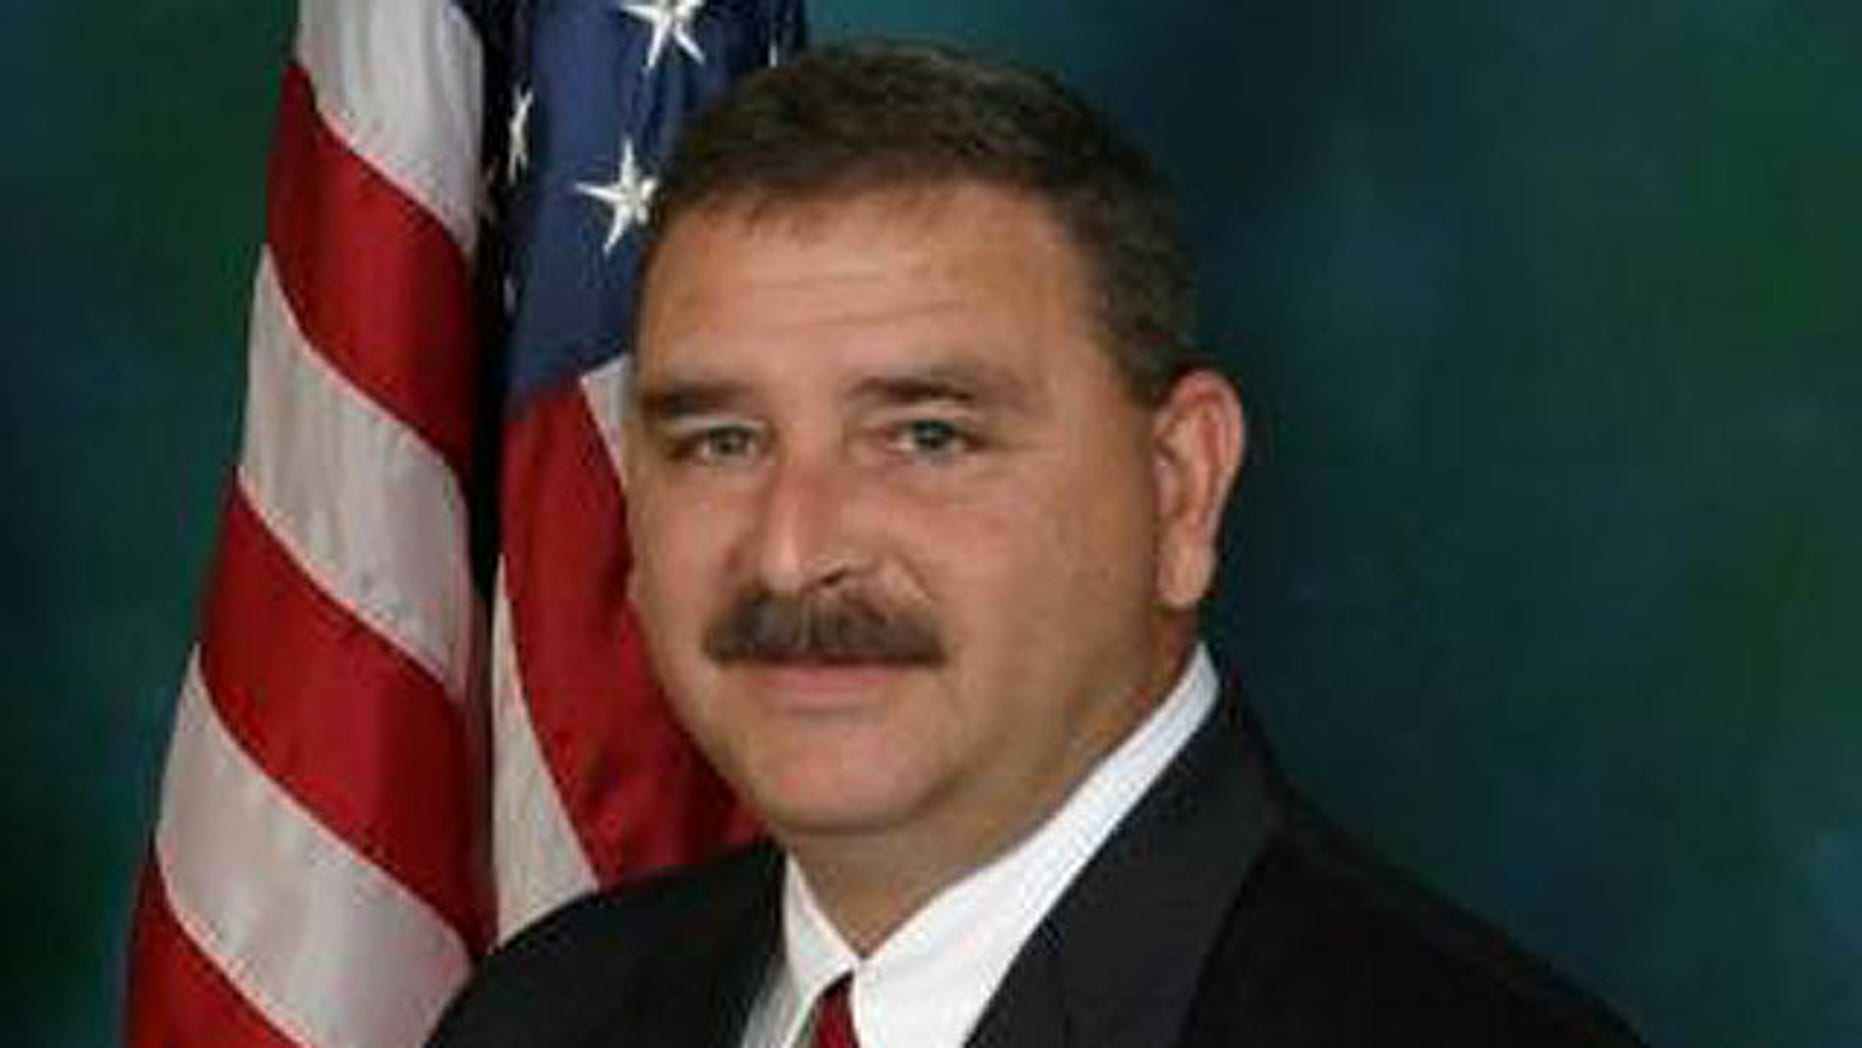 Spartanburg County Sheriff Chuck Wright, above, made the suggestion at a news conference on Monday while detailing an attempted rape on Sunday at Milliken Park in Spartanburg.